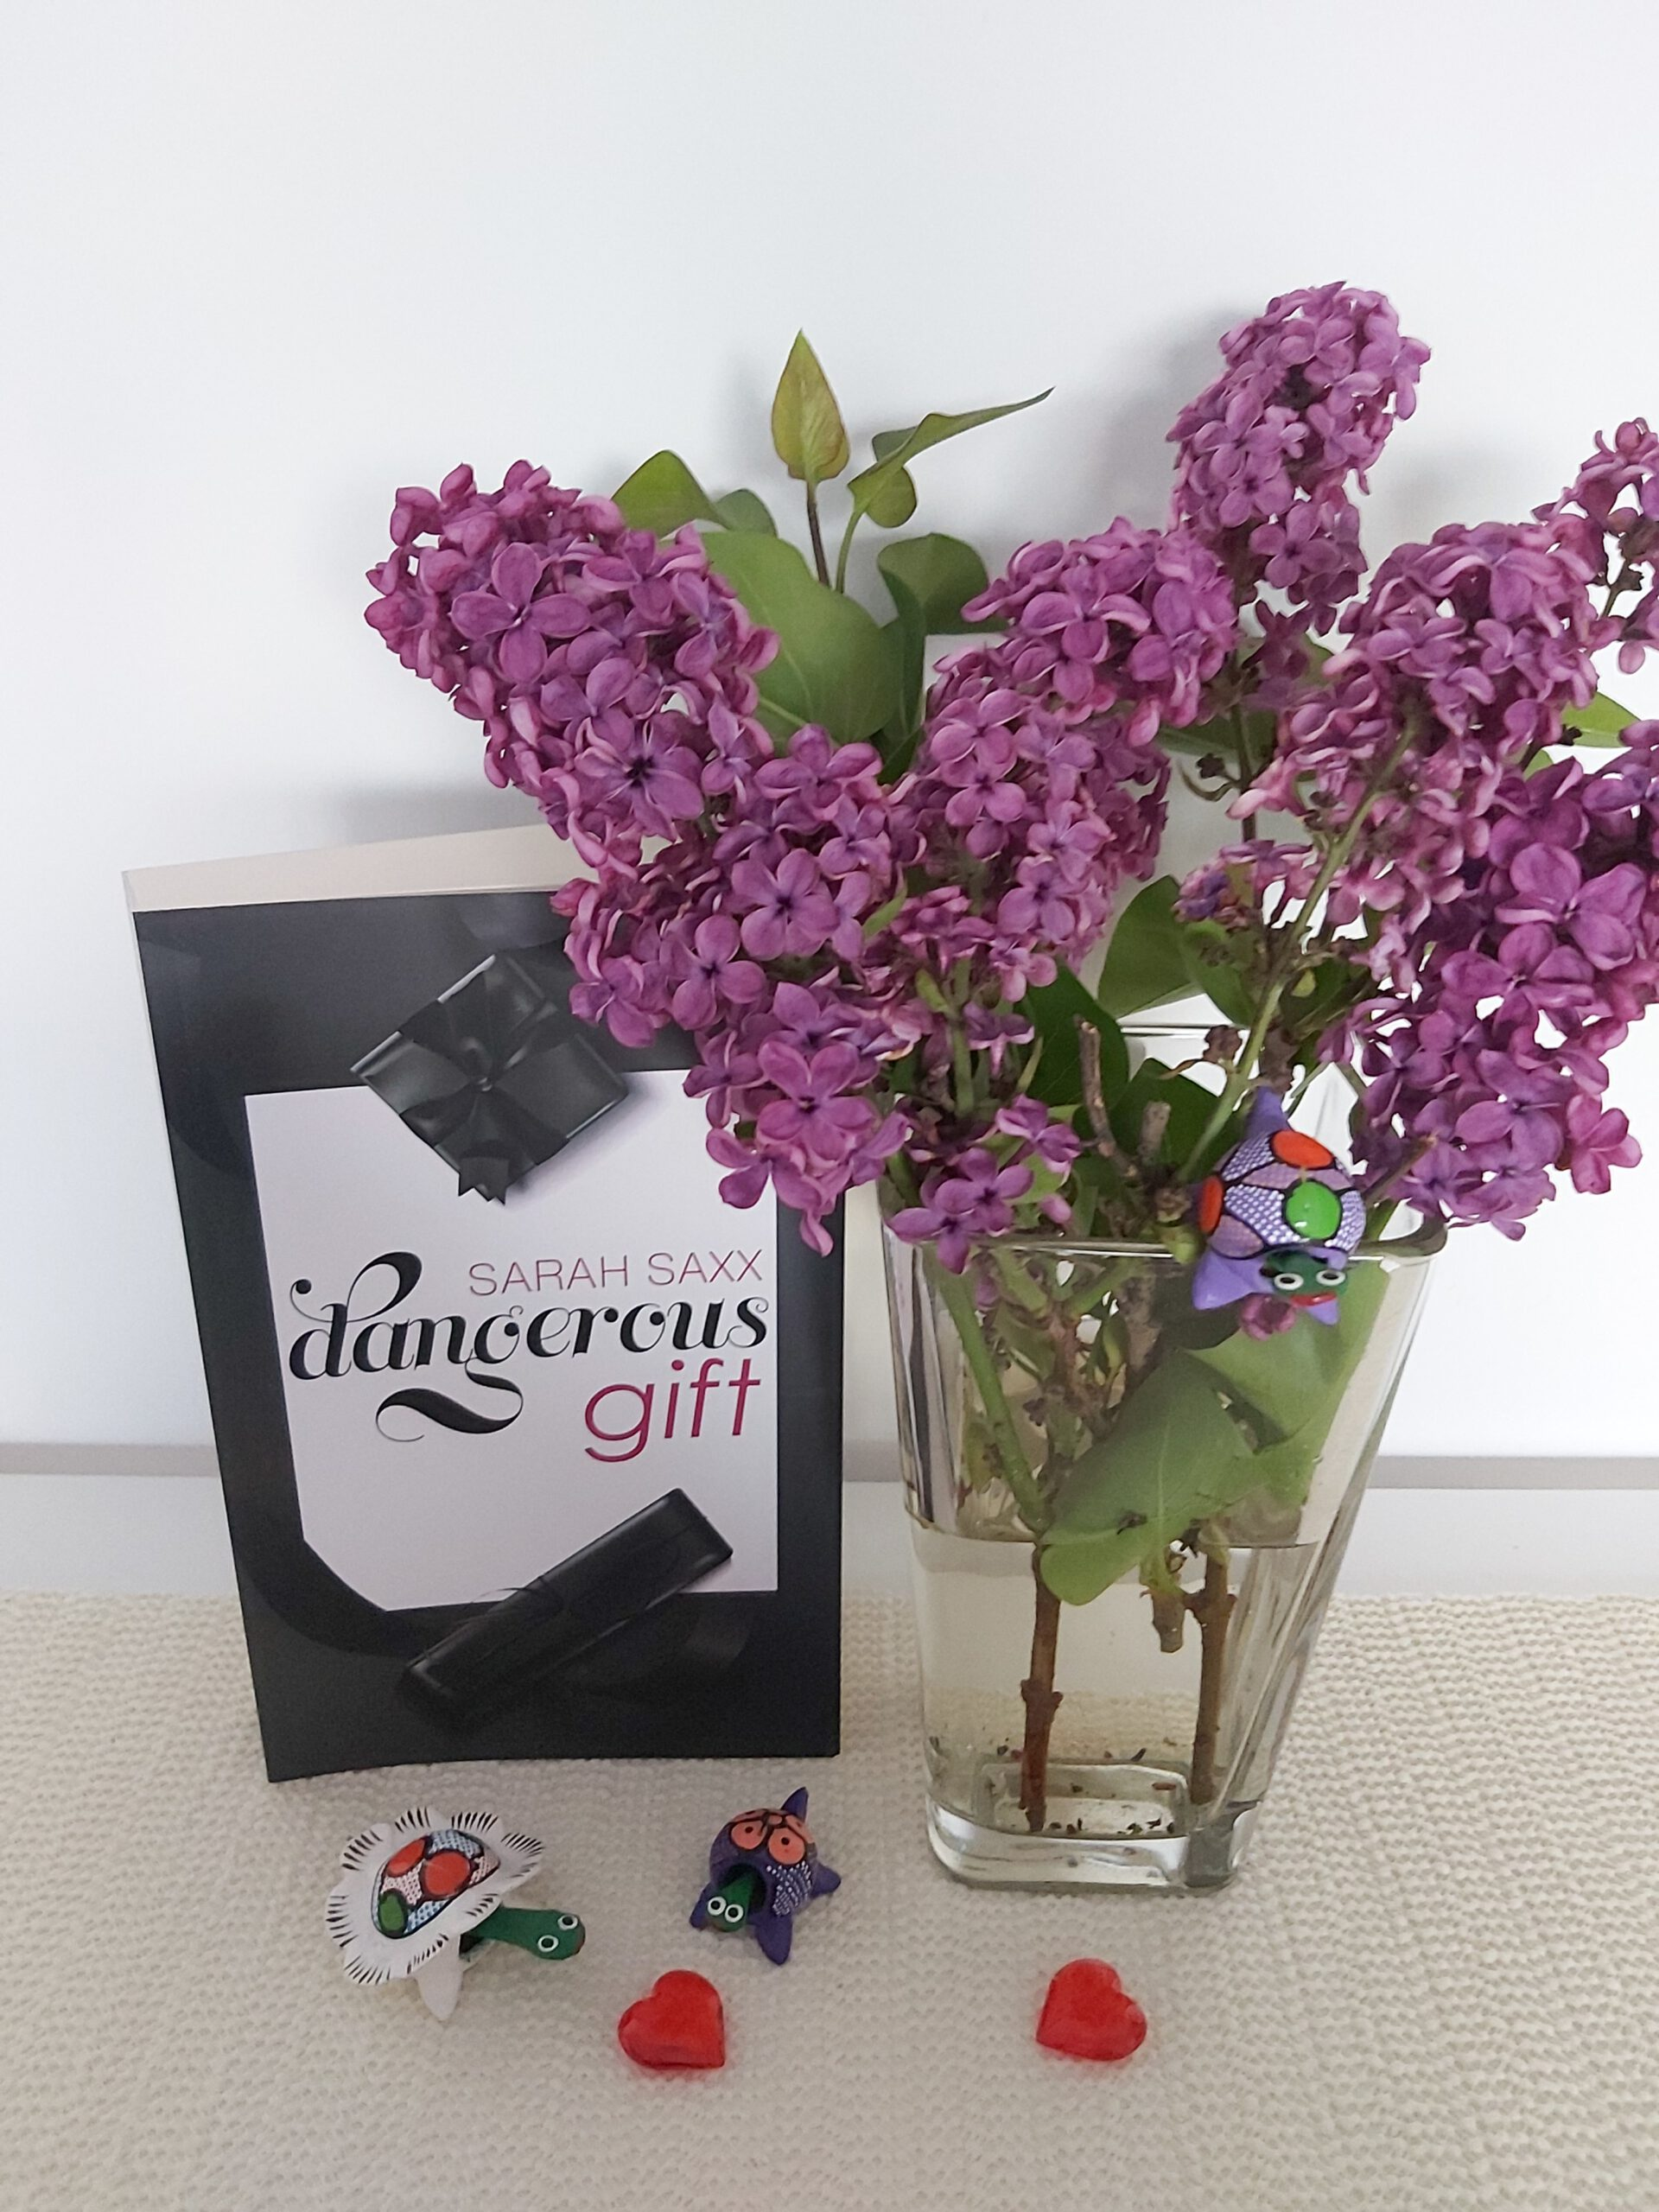 Rezension zu dangerous gift